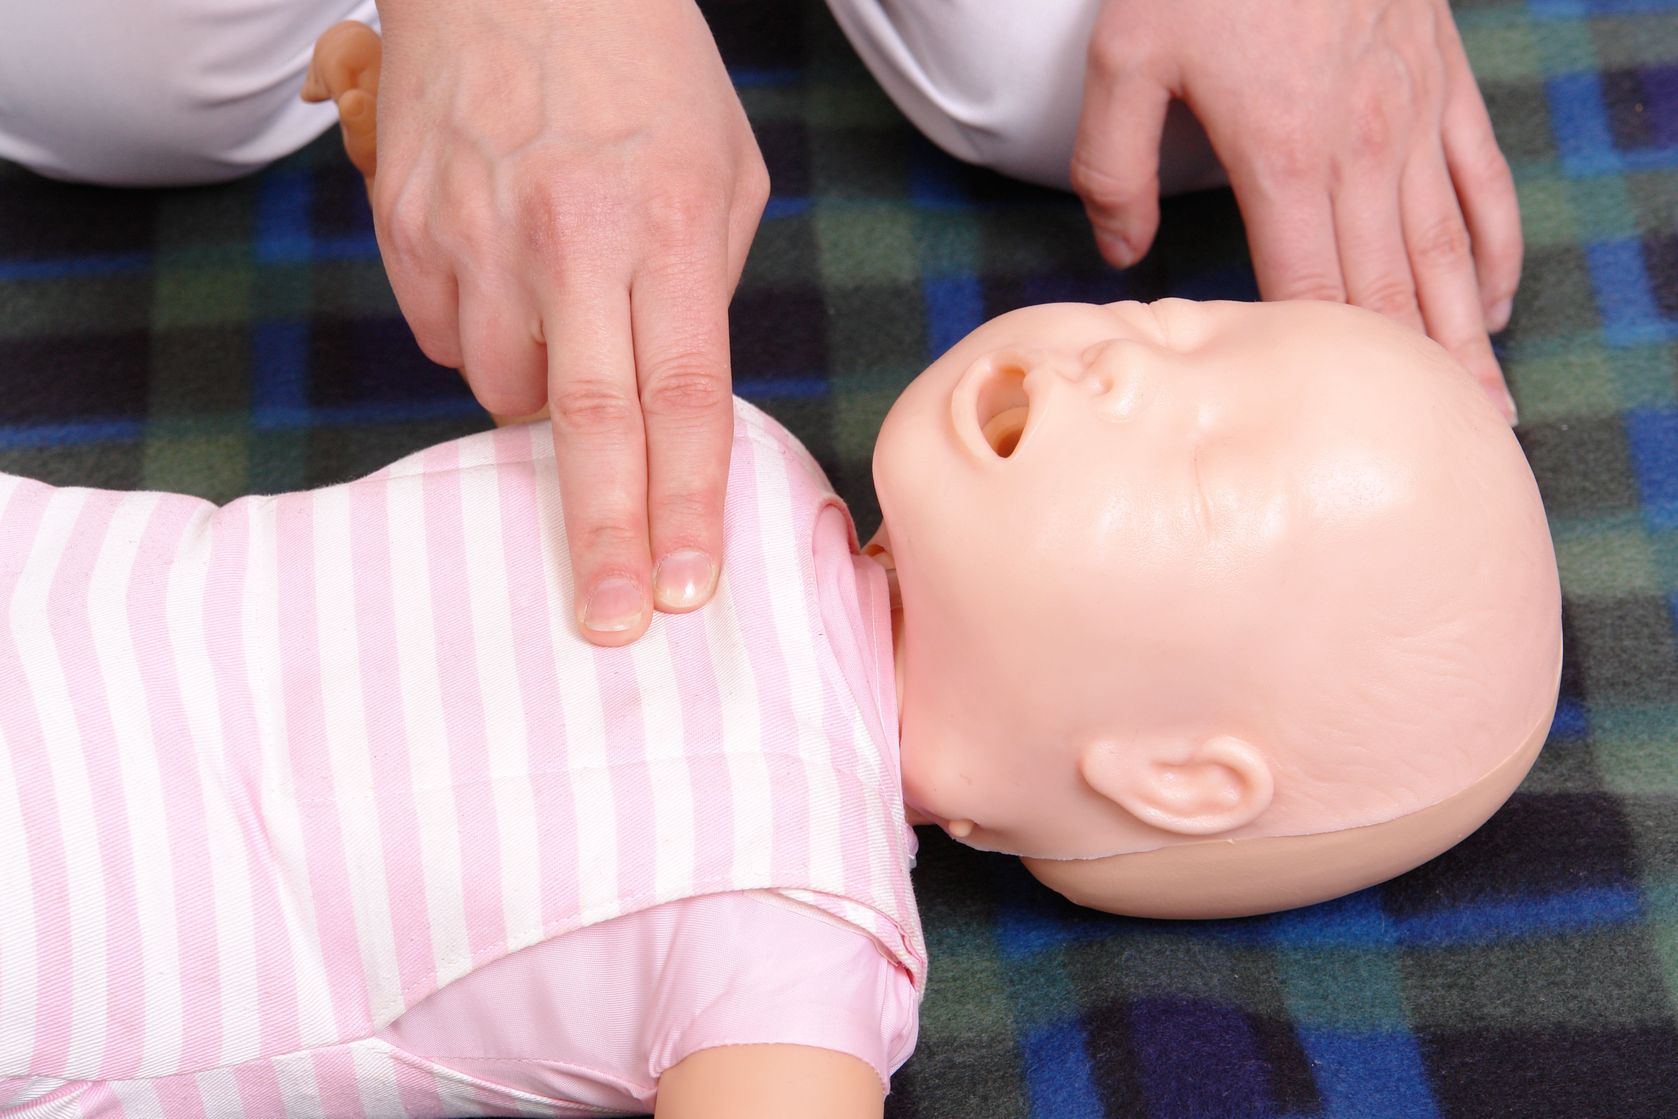 Adult, Baby & Child Basic Life Support -